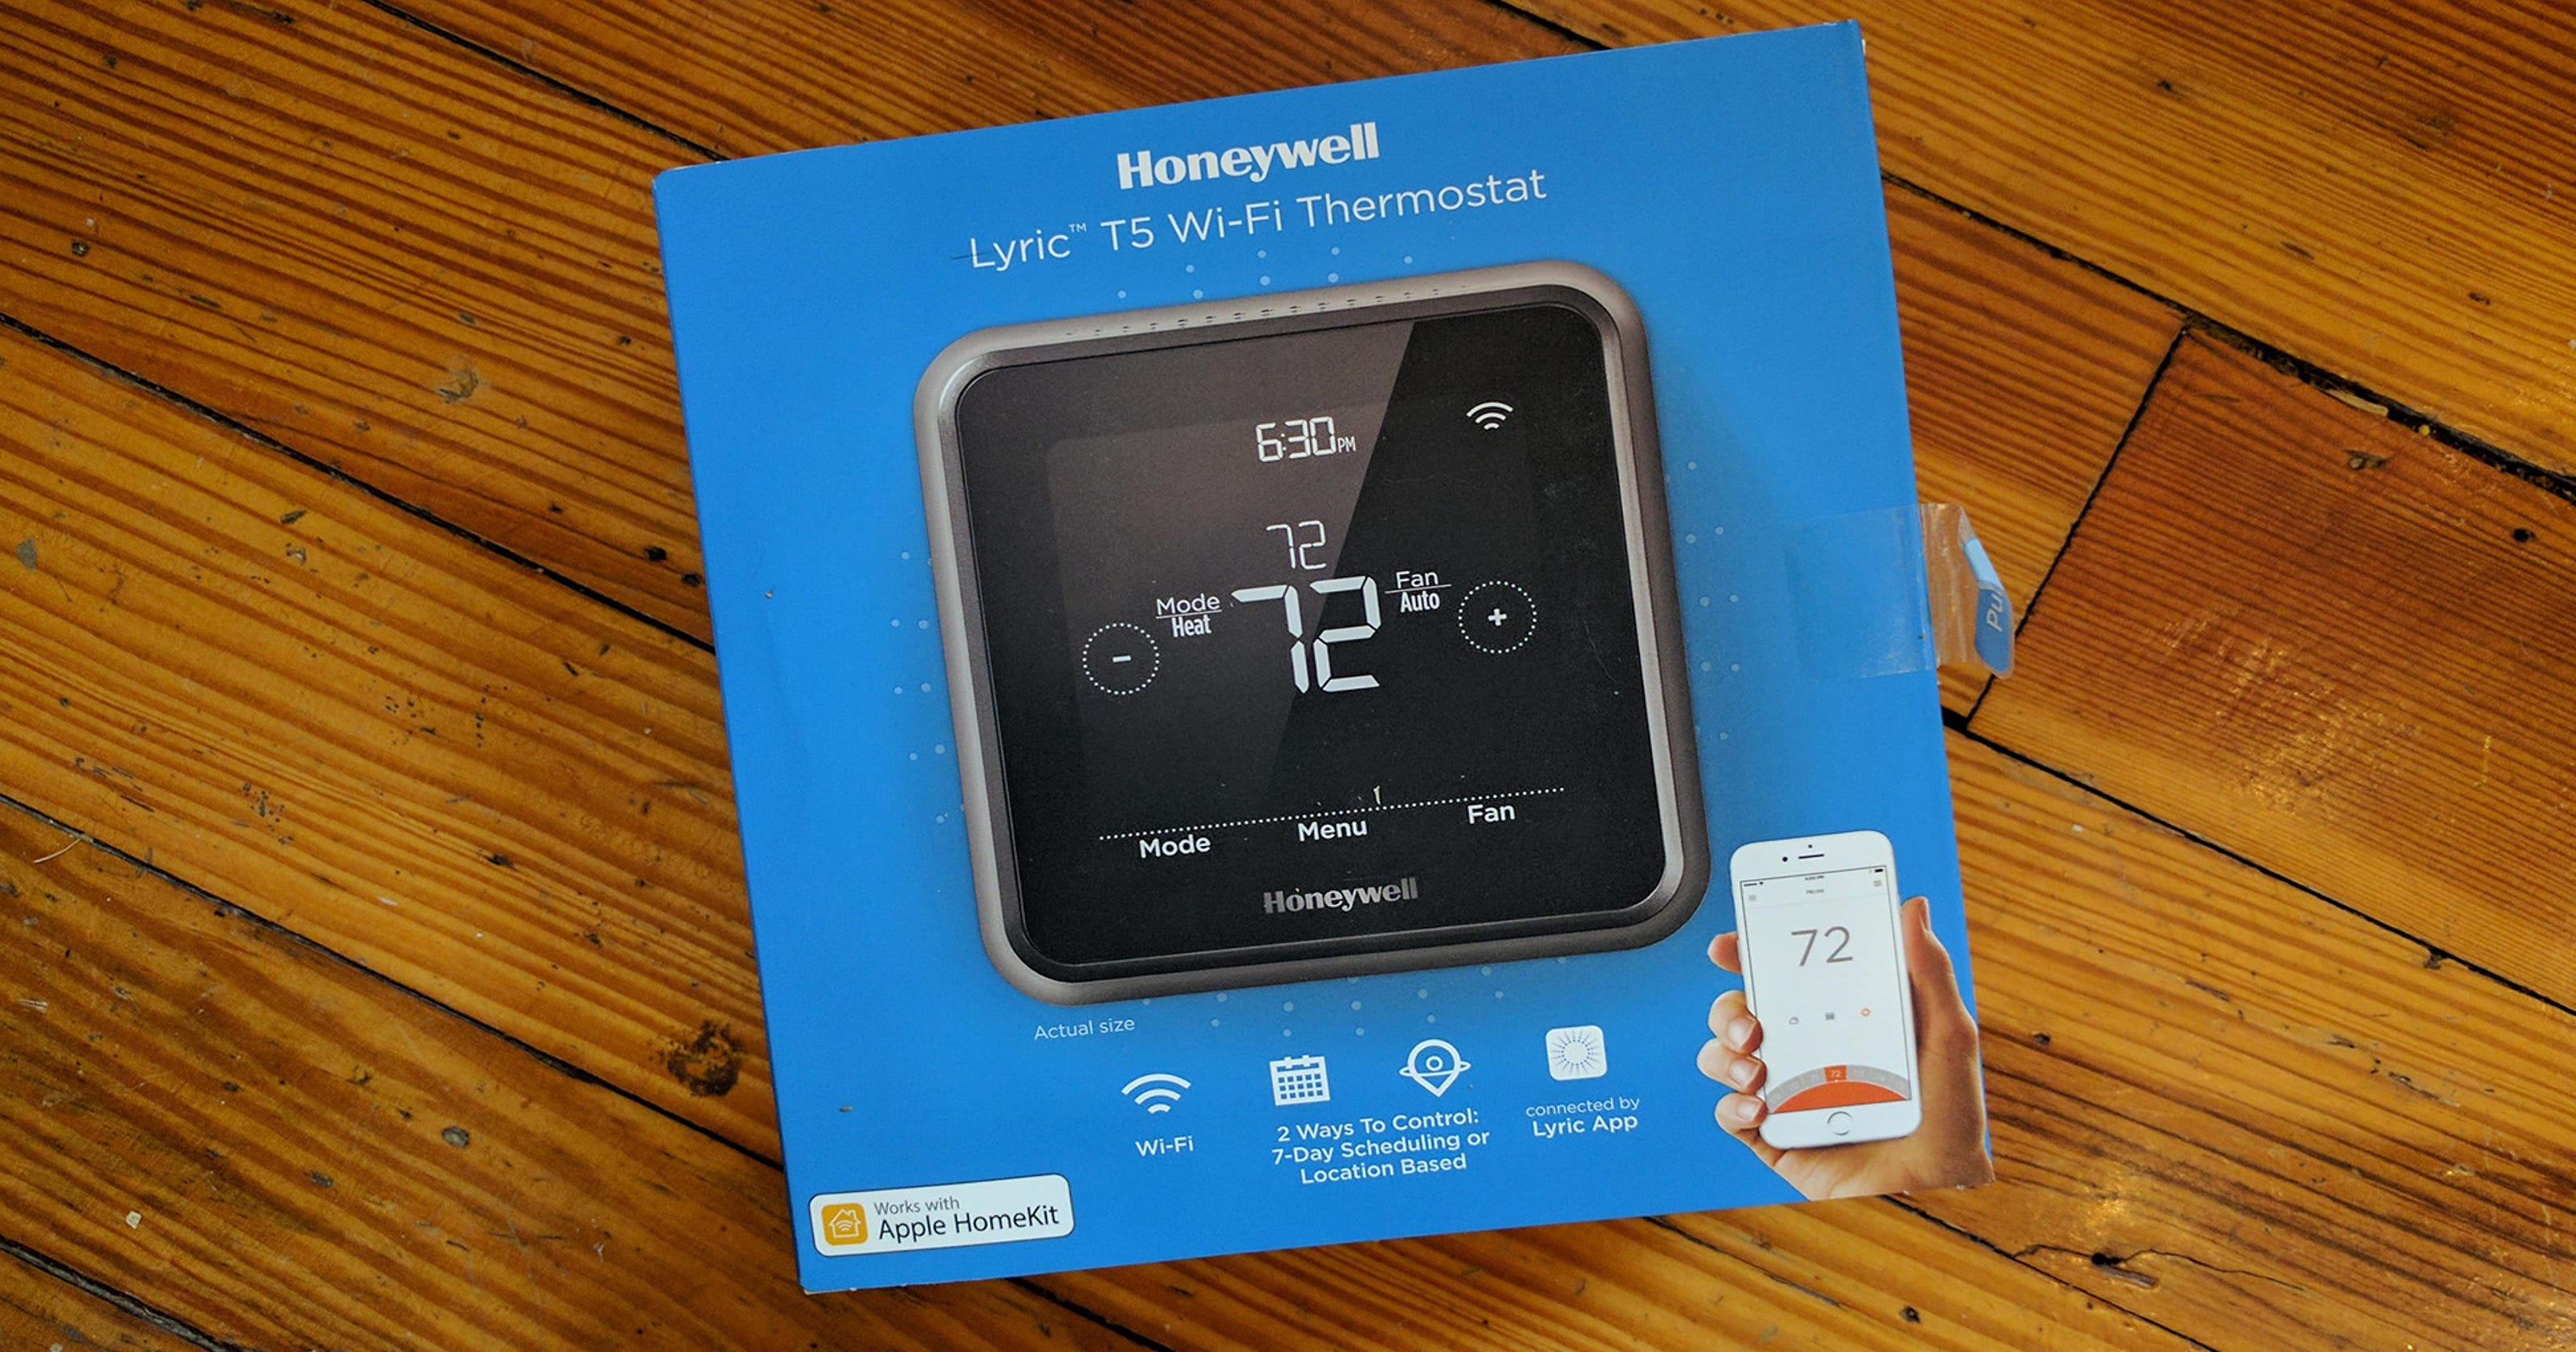 Review: Honeywell Lyric T5 Wi-Fi Thermostat